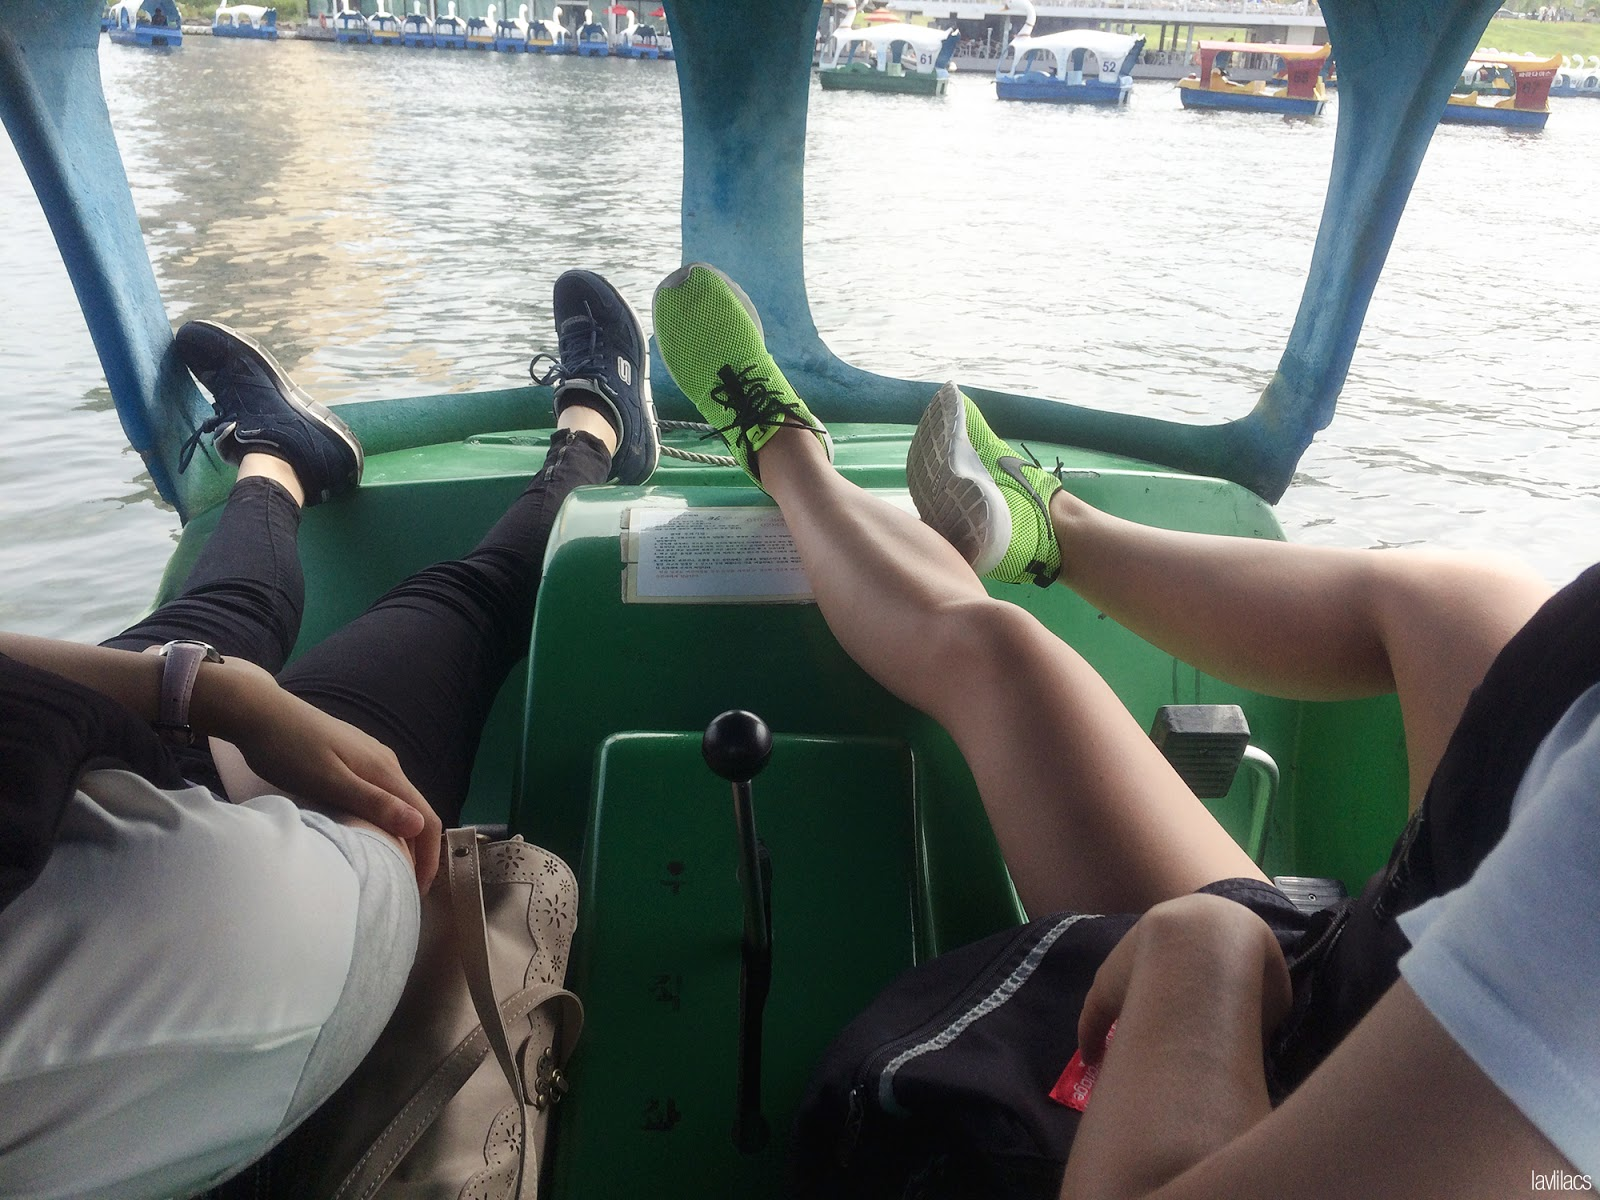 Seoul, Korea - Summer Study Abroad 2014 - Yeouido Park - Han River - tired out from swan pedal boat